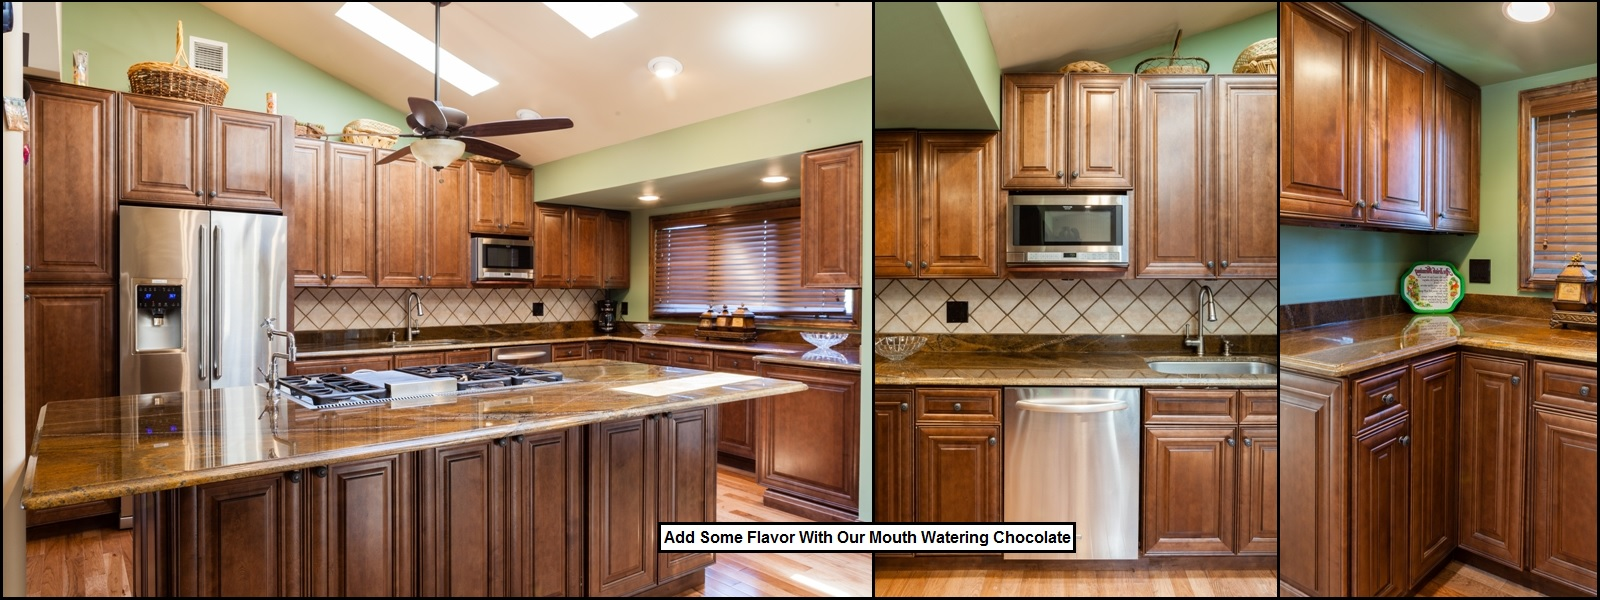 Amazing Scottsdale High Quality Kitchen Cabinets U0026 Countertops Good Ideas